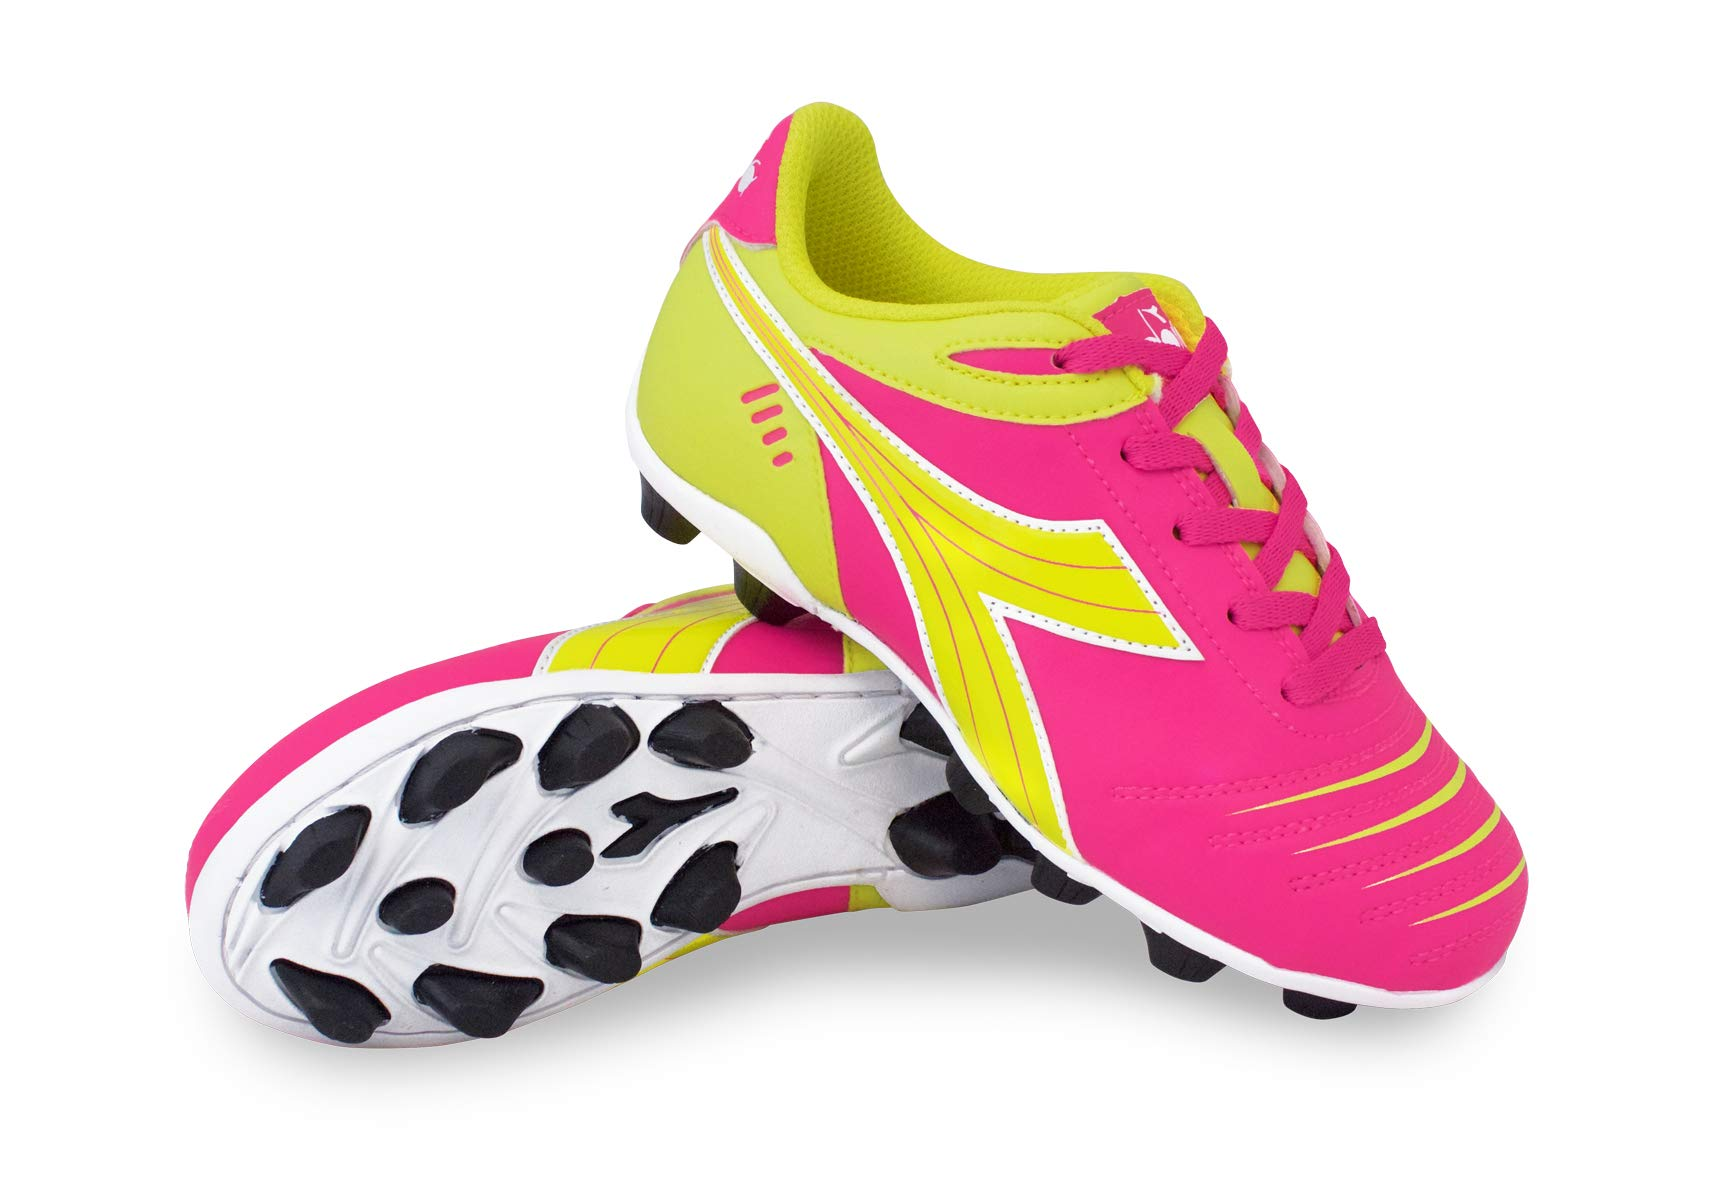 Diadora Kid's Cattura MD JR Soccer Cleats (6 M US Big Kid, Neon Pink/Neon Yellow)